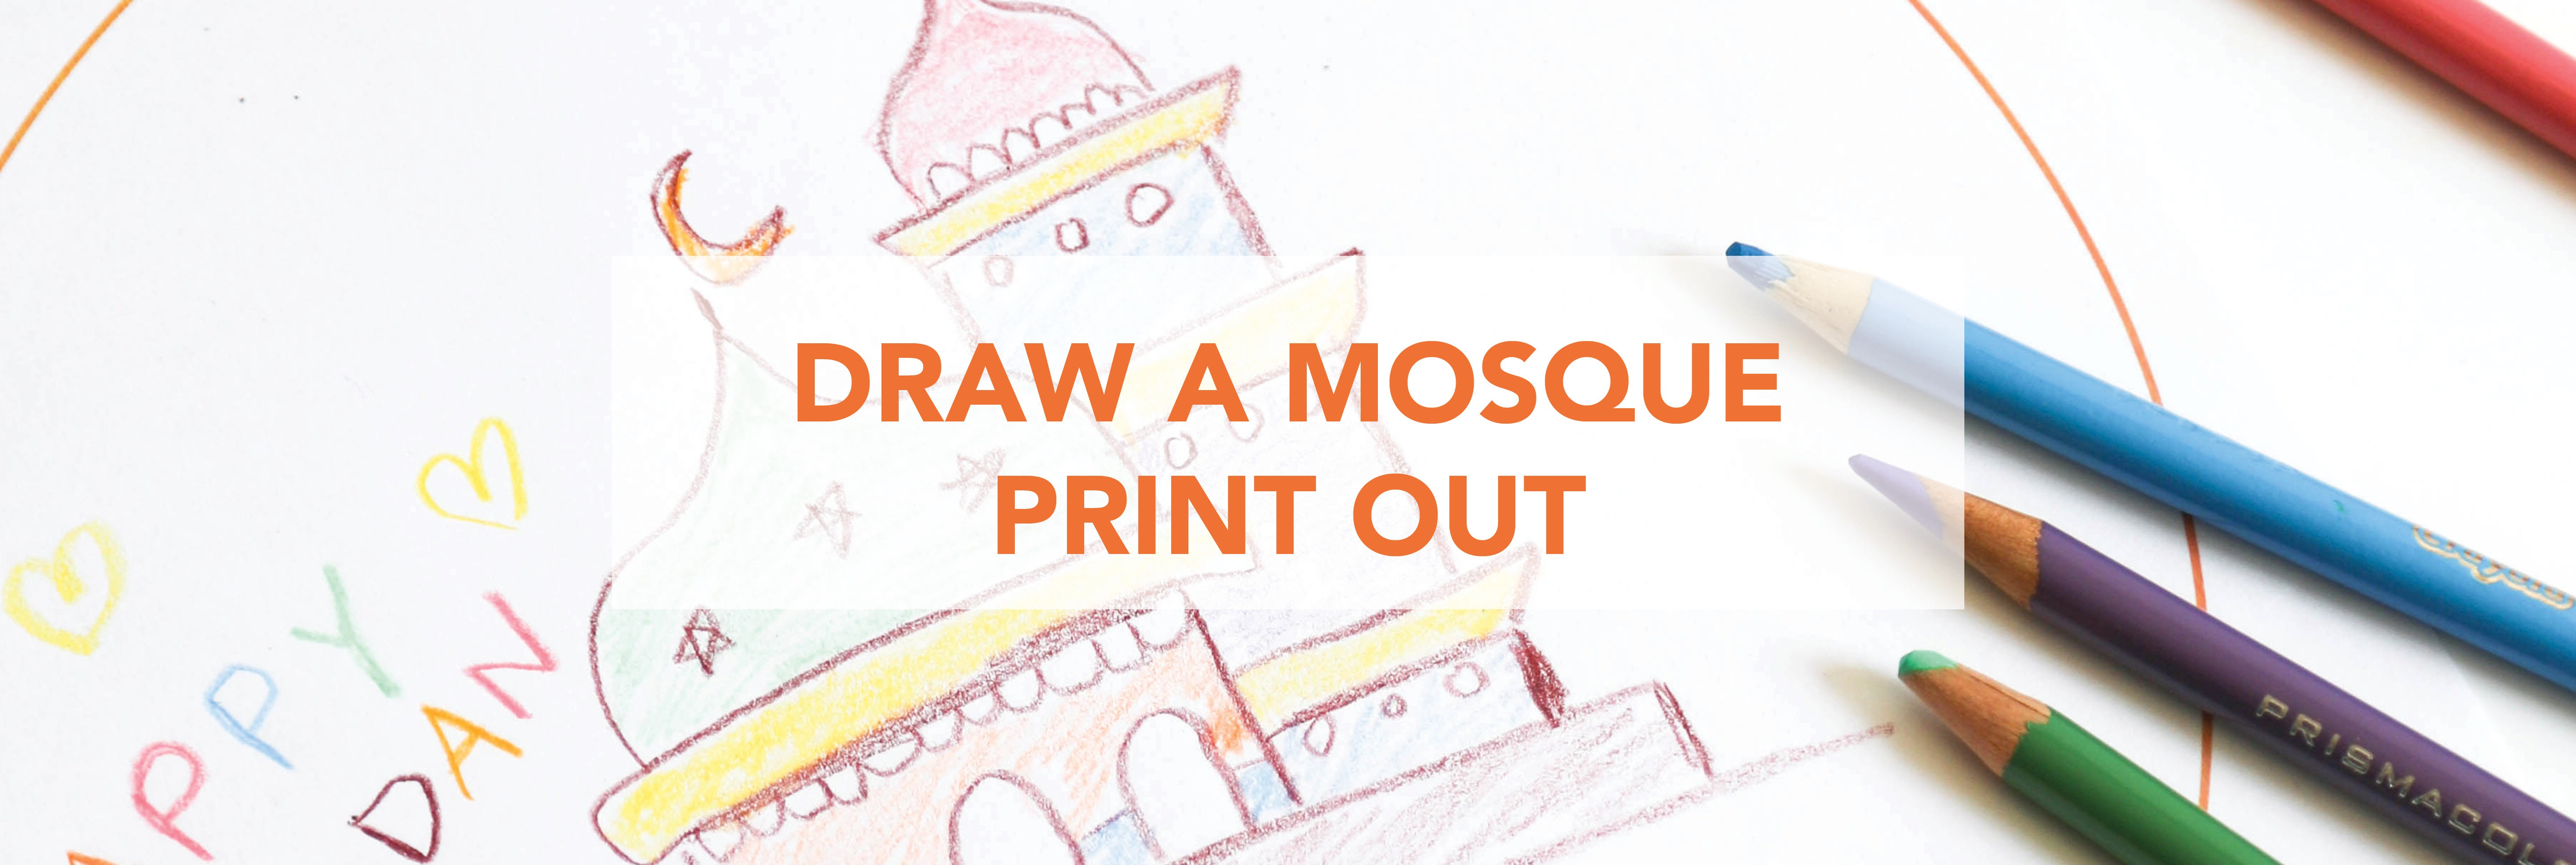 Amasi Decor Draw a Mosque Print Out